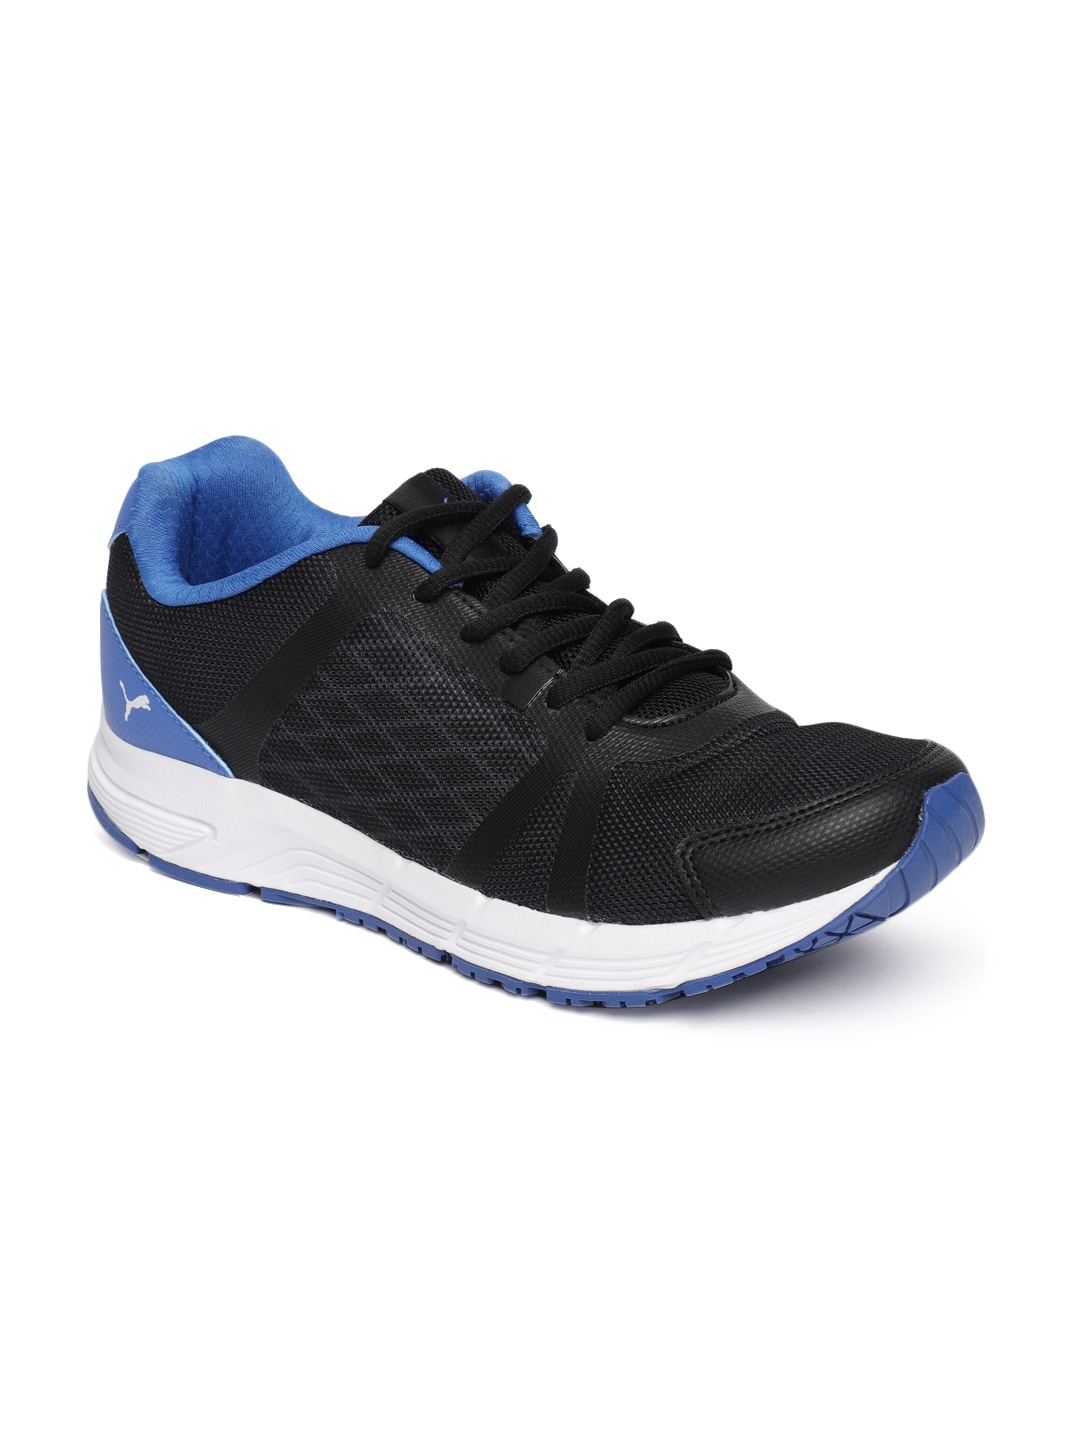 Puma Running Shoes  5a59f80b3